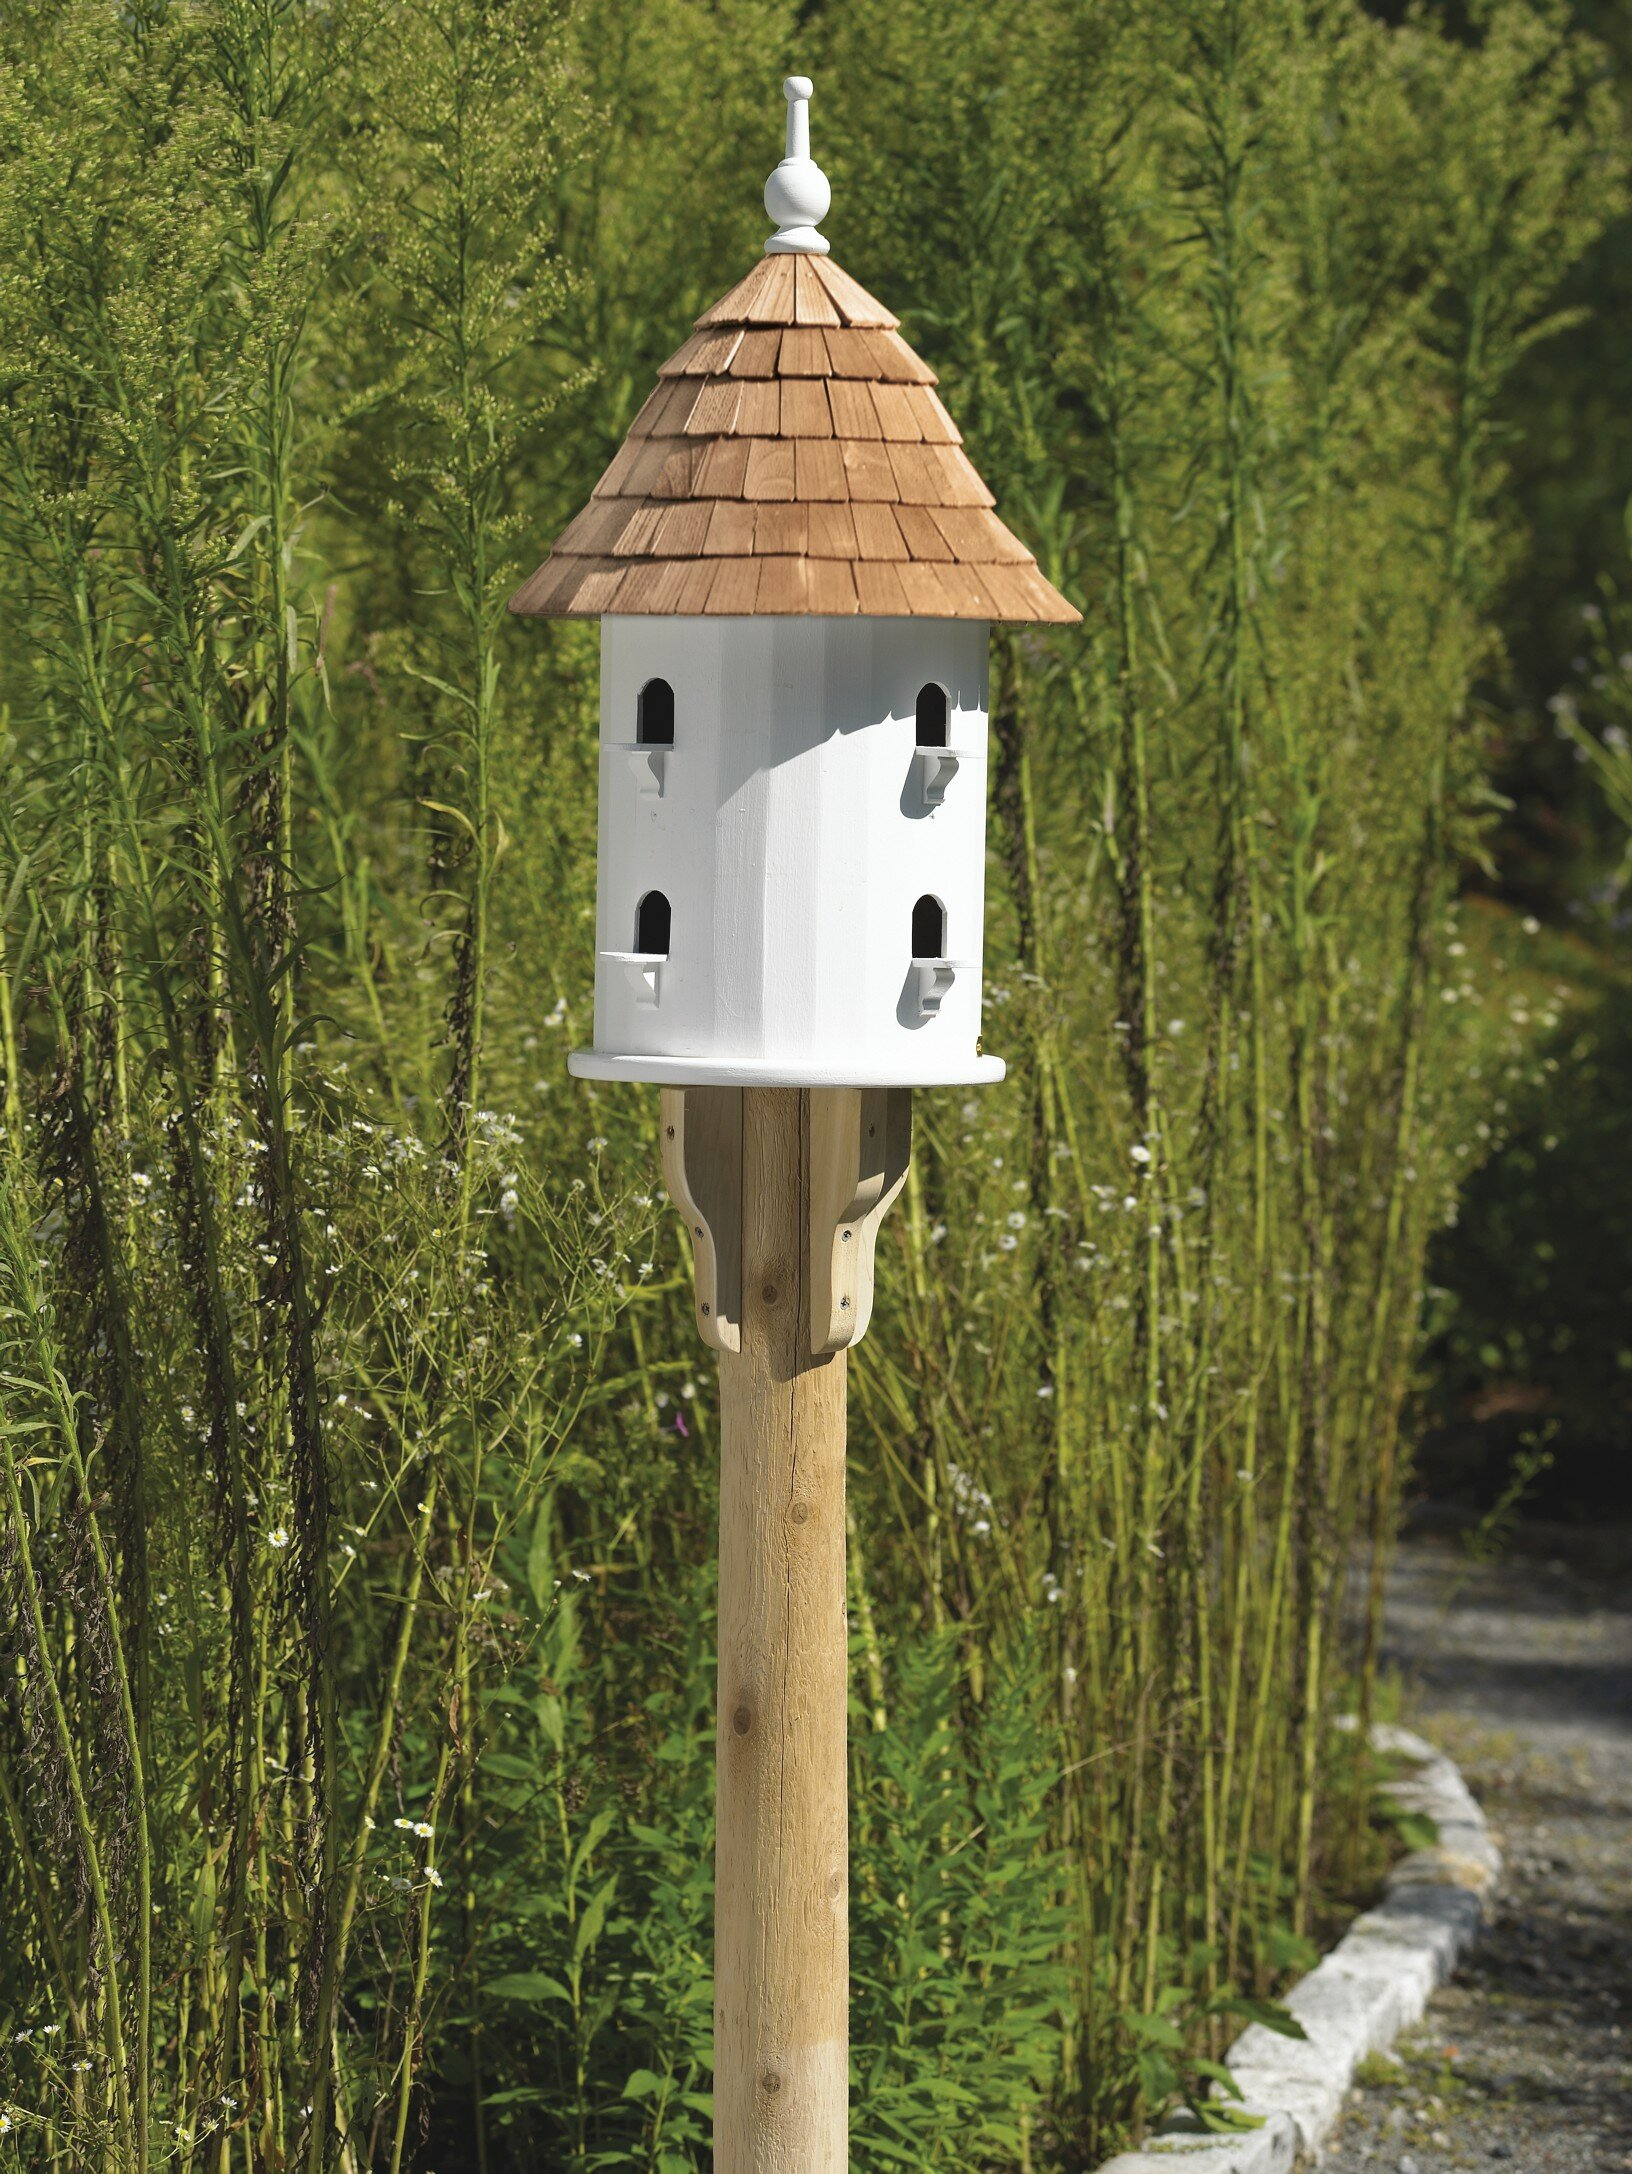 Good Directions Lazy Hill Farm 28 in x 16 in x 16 in Birdhouse ... on